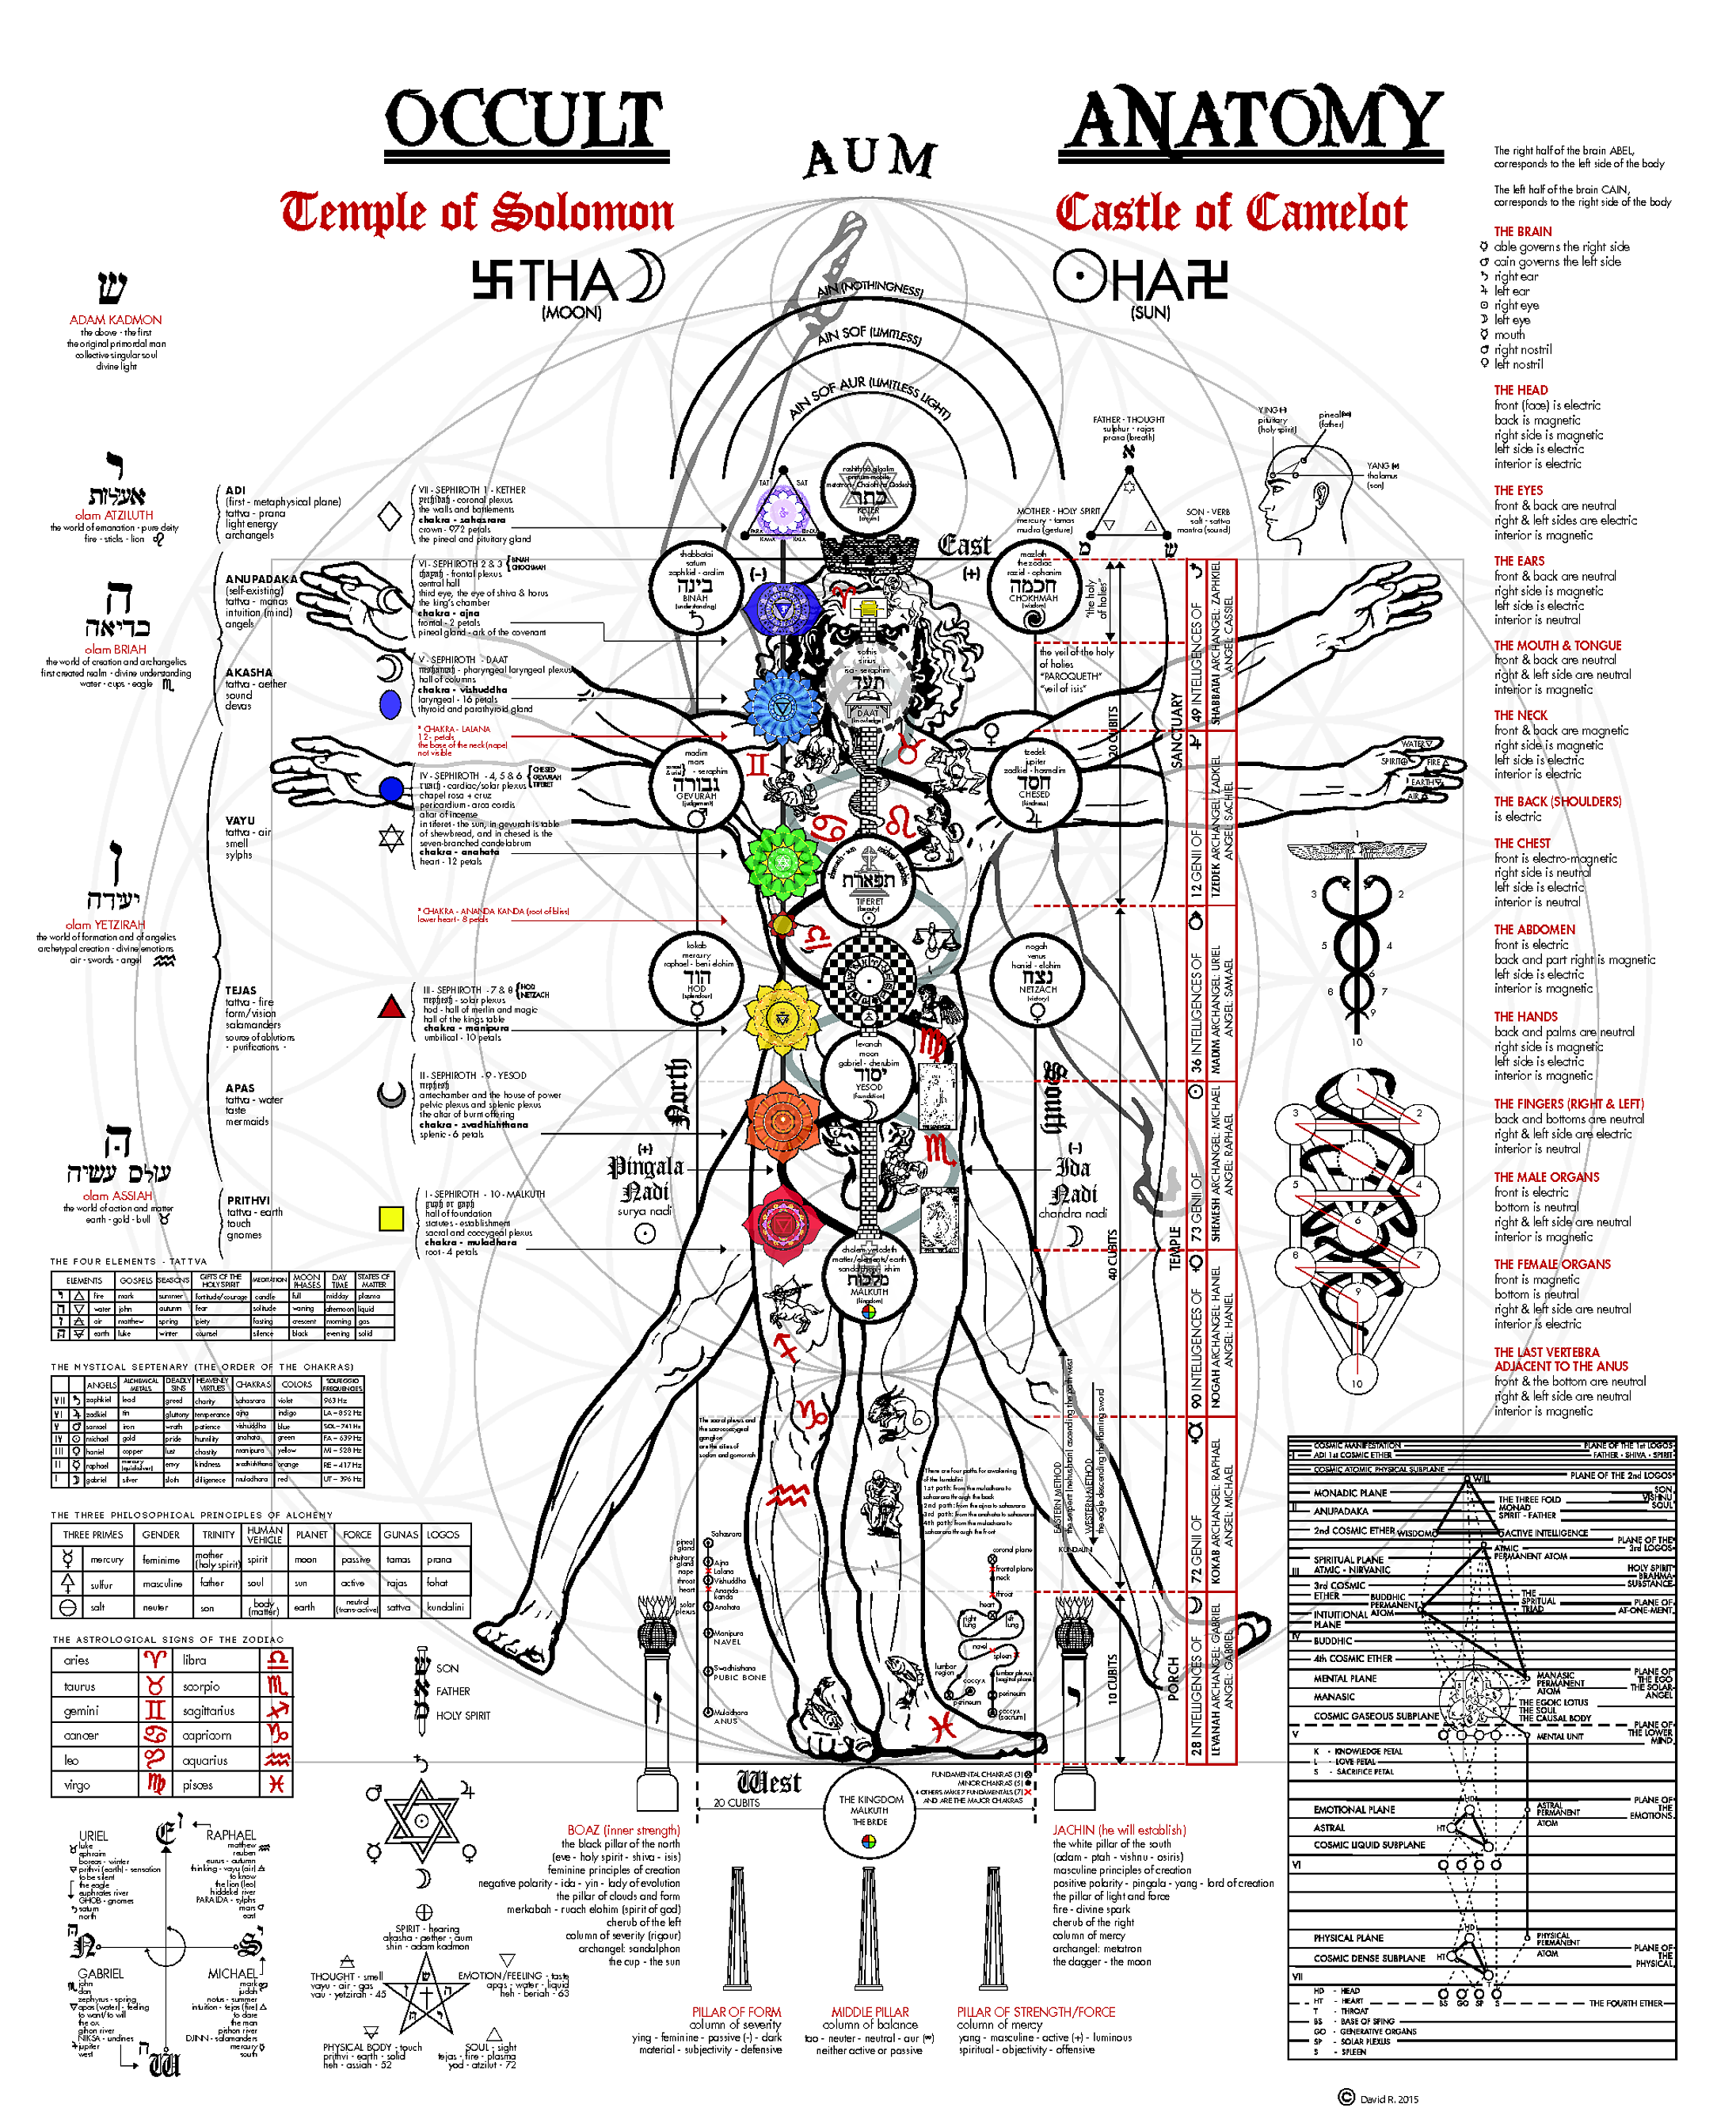 Occult Anatomy | Inspiration